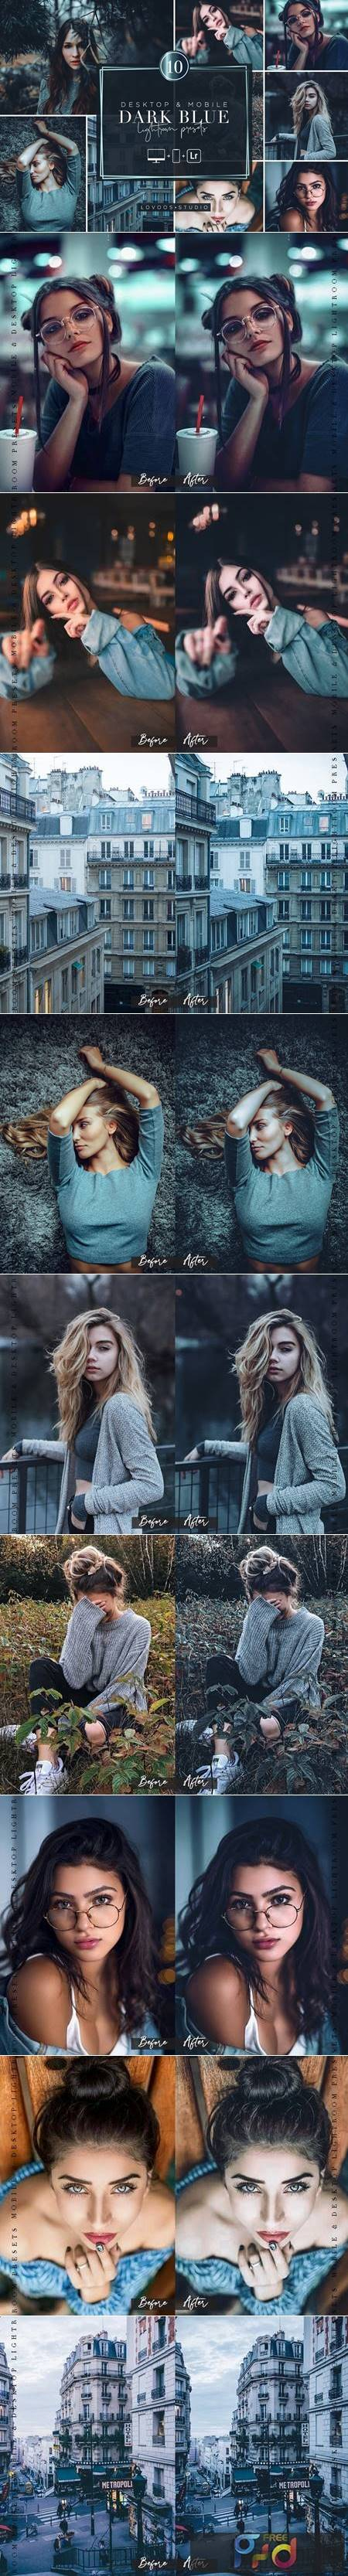 DARK BLUE - Lightroom Presets 6015455 1